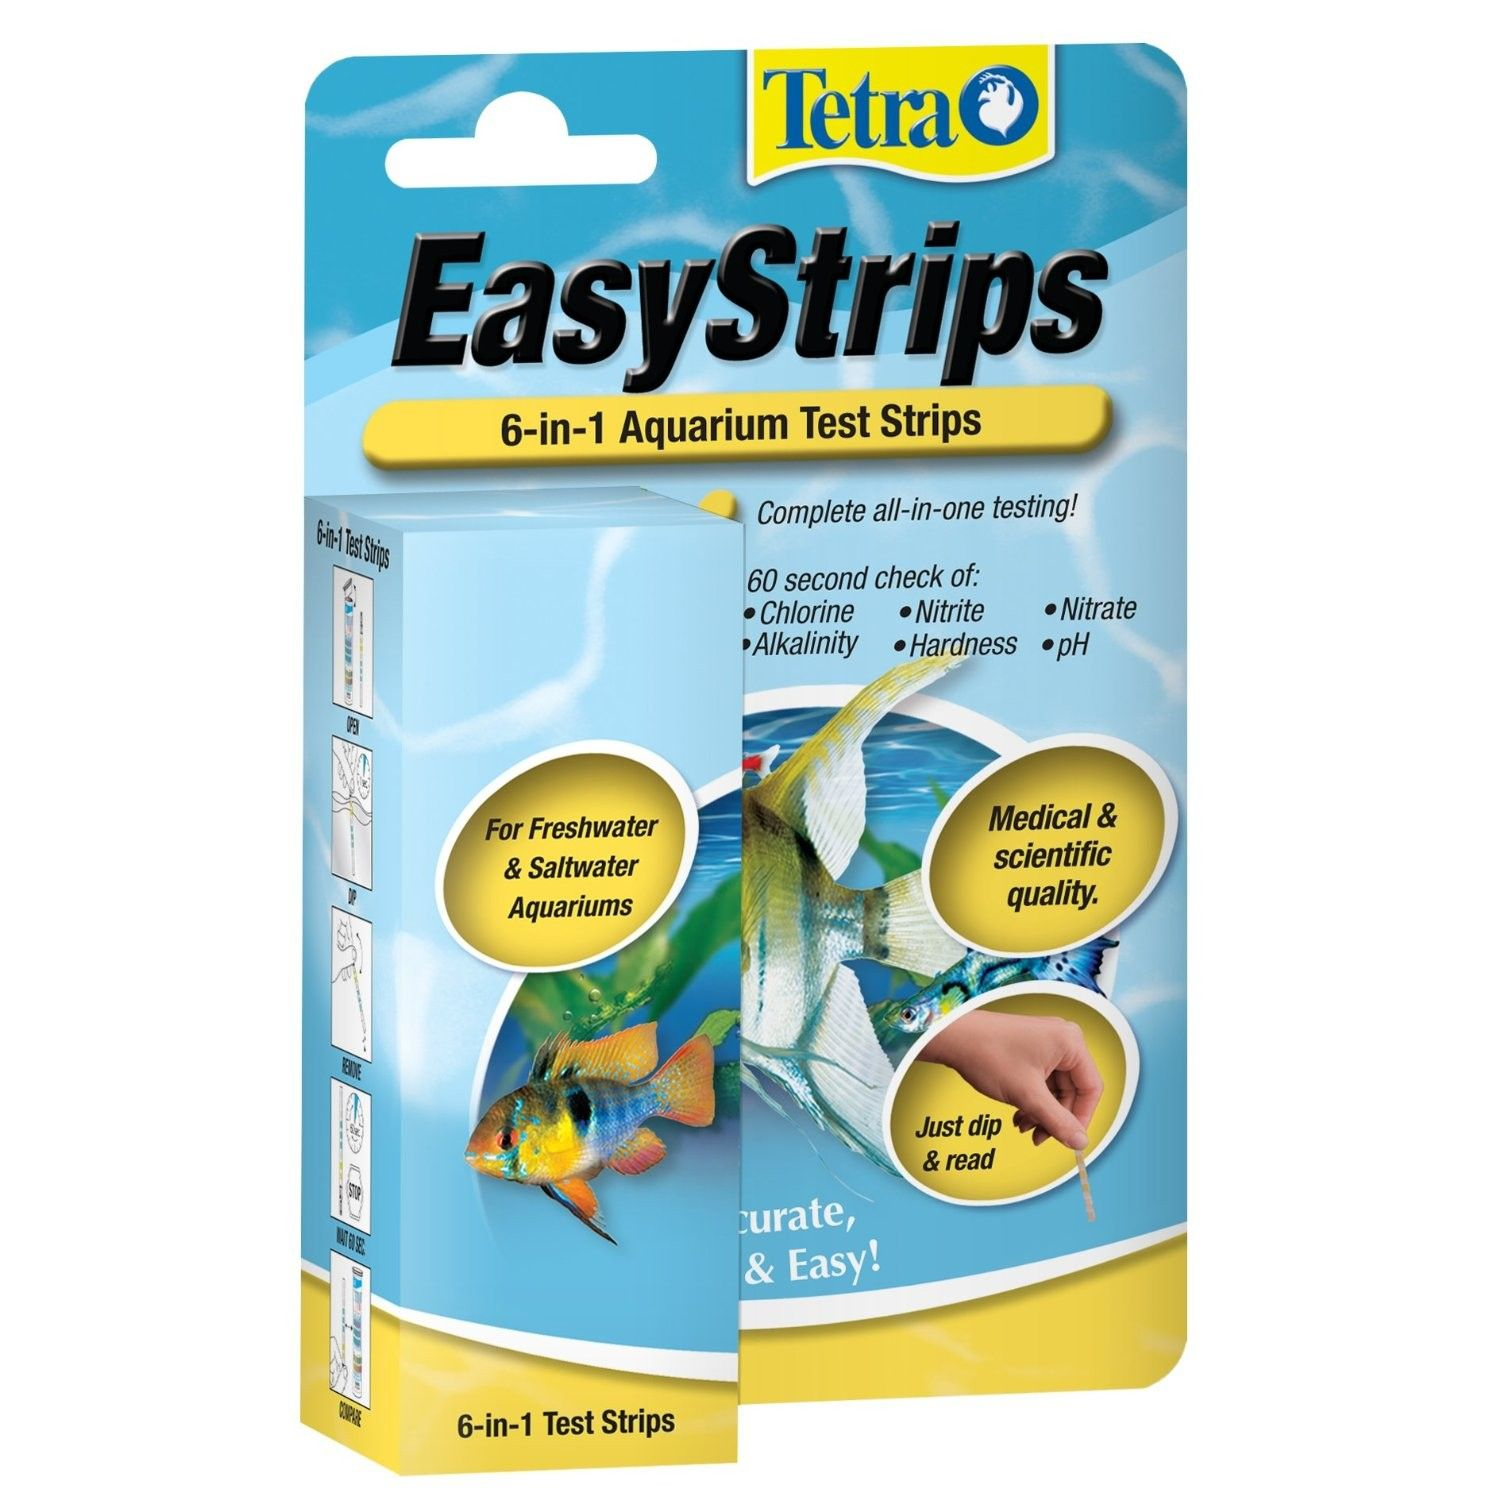 Tetra Easy Strip Test Strips 6 in 1